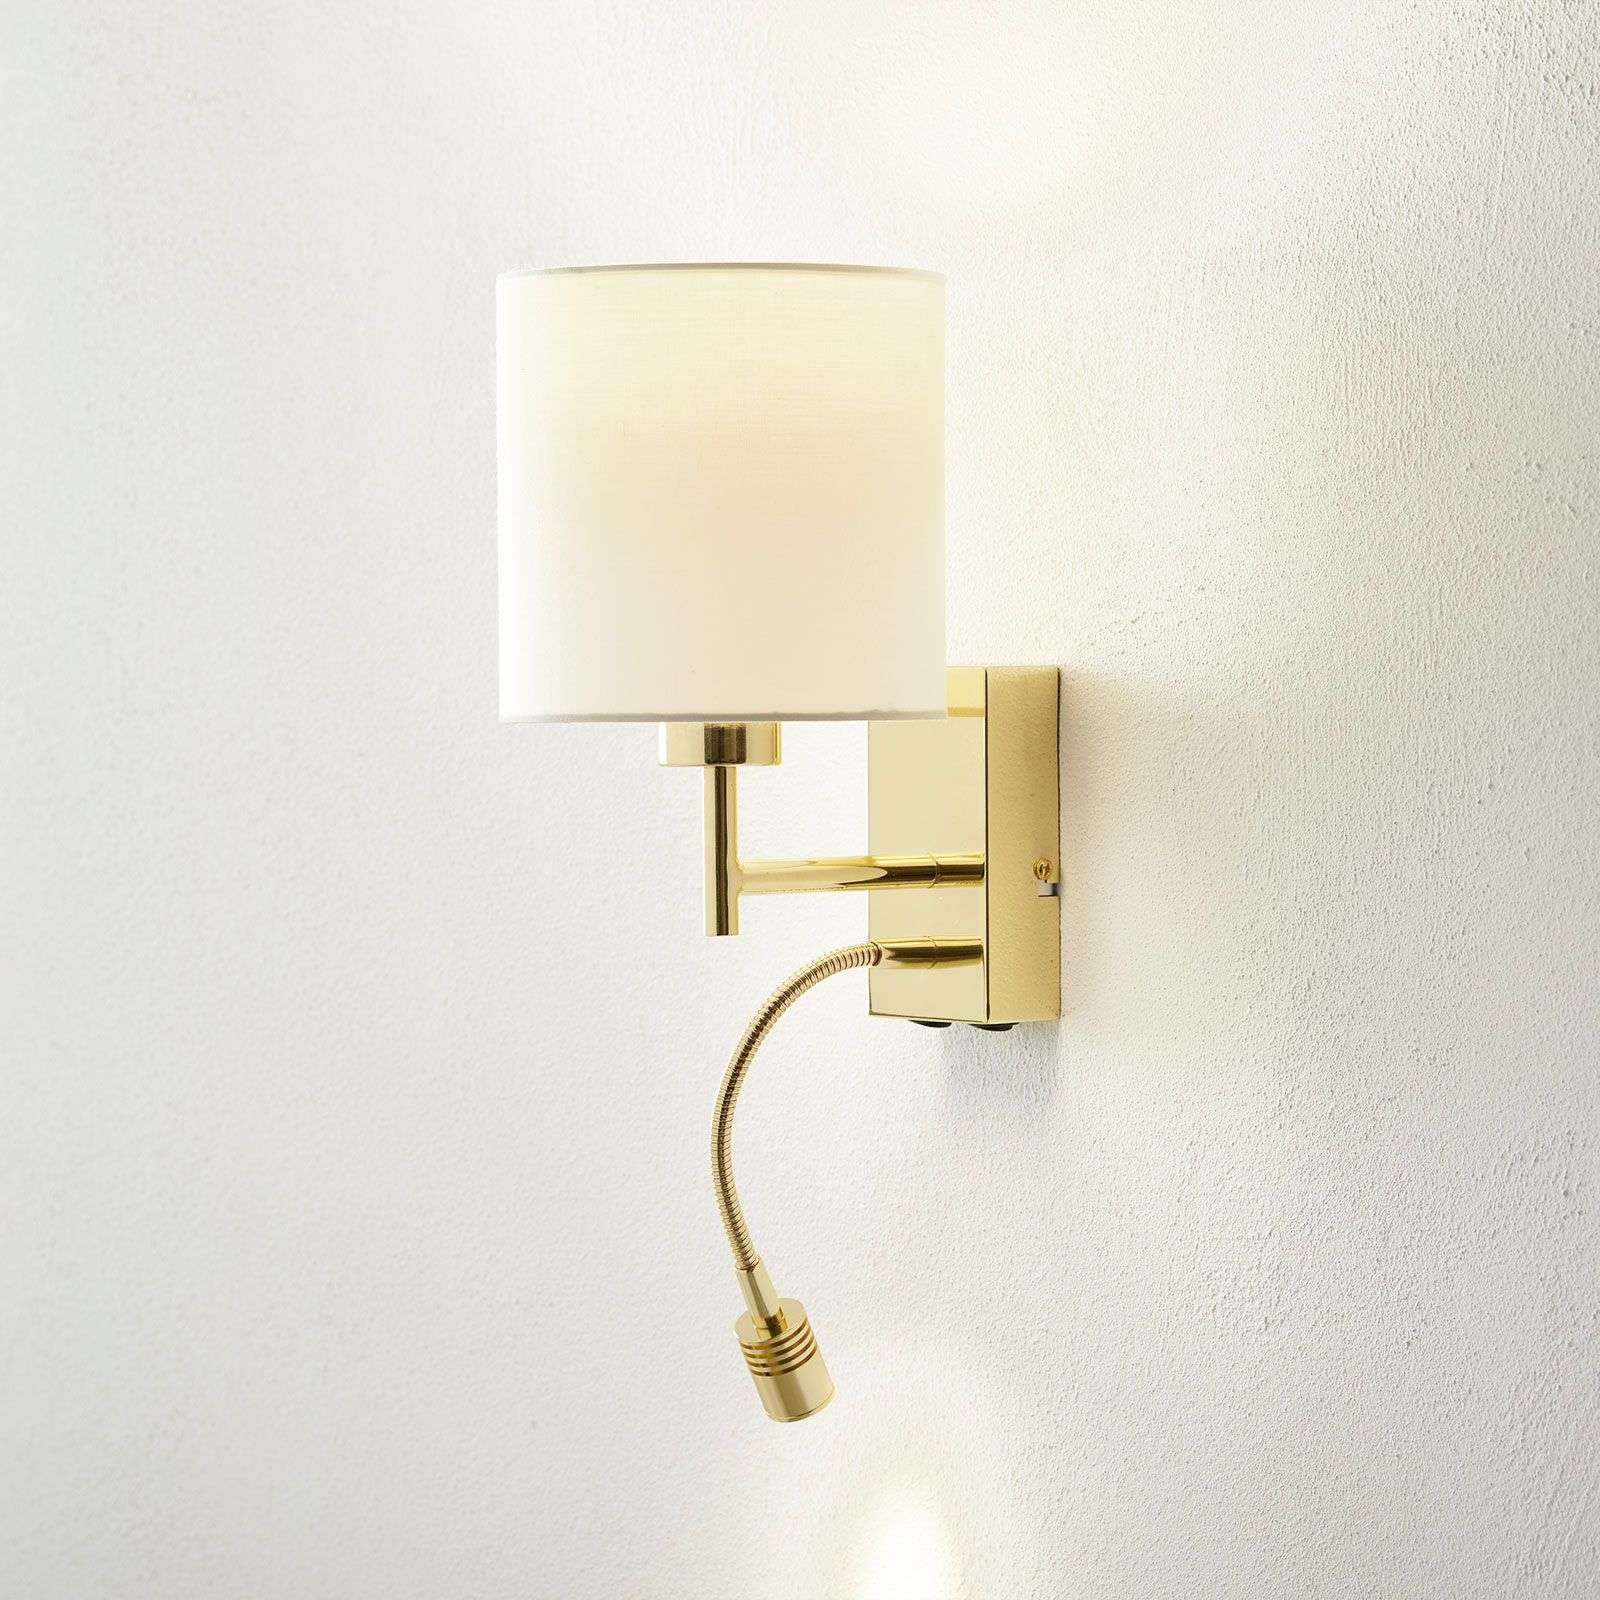 Wall lamp mainz with led flexible arm lights wall lamp mainz with led flexible arm 4580378 39 mozeypictures Image collections